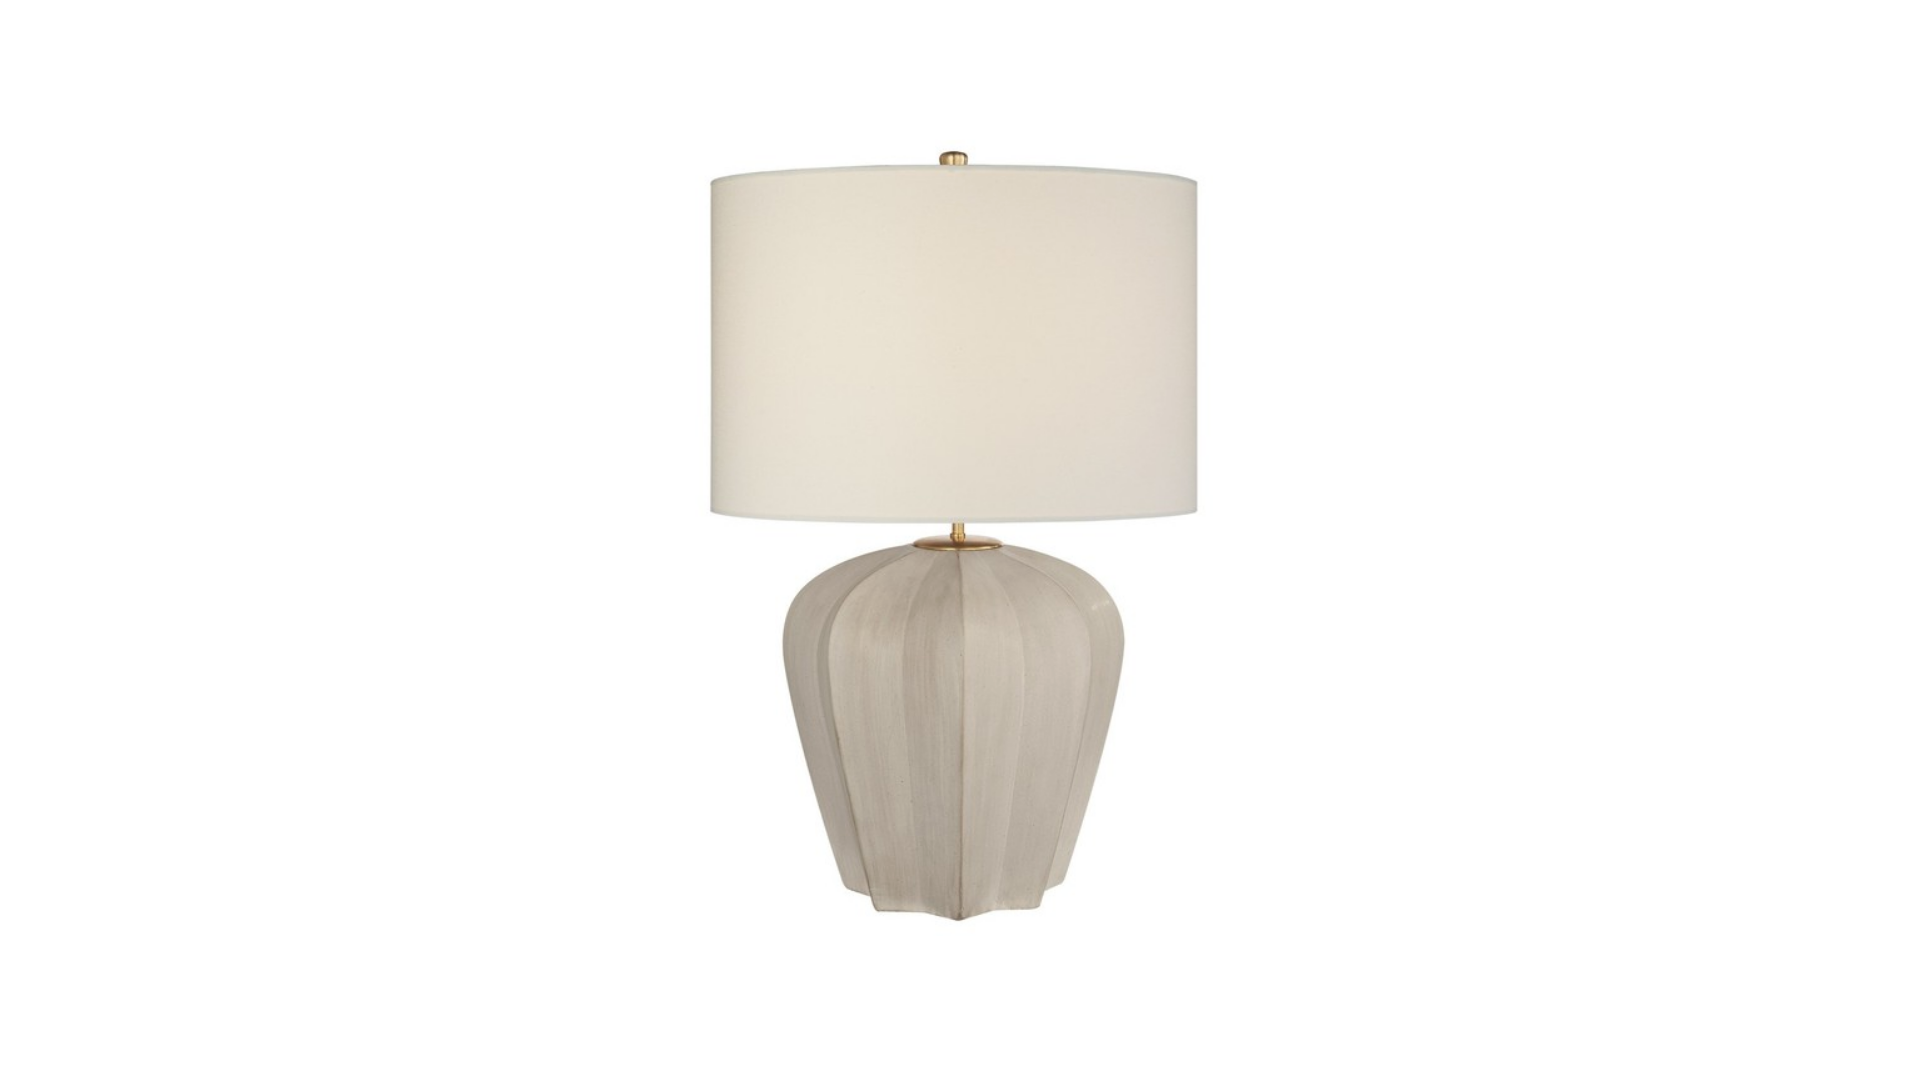 "Pair of Visual Comfort Table Lamps<br /> <br /> Product Description<br /> <br /> Visual Comfort Lighting Pierrepont Medium Table Lamp, Stone White.<br /> <br /> Details:<br /> <br /> Designer: Aerin<br /> Finish: Stone White<br /> Shade: Linen<br /> Socket: Dimmer<br /> Type of Bulb: E26 A<br /> Bulbs not included<br /> Number of Bulbs: 1<br /> Wattage Per Bulb: 75W<br /> Total Wattage: 75W<br /> UL Listing: Dry Location<br /> Dimensions: 21""W x 30""H<br /> Base Dimensions: 13.5"" Decorative"